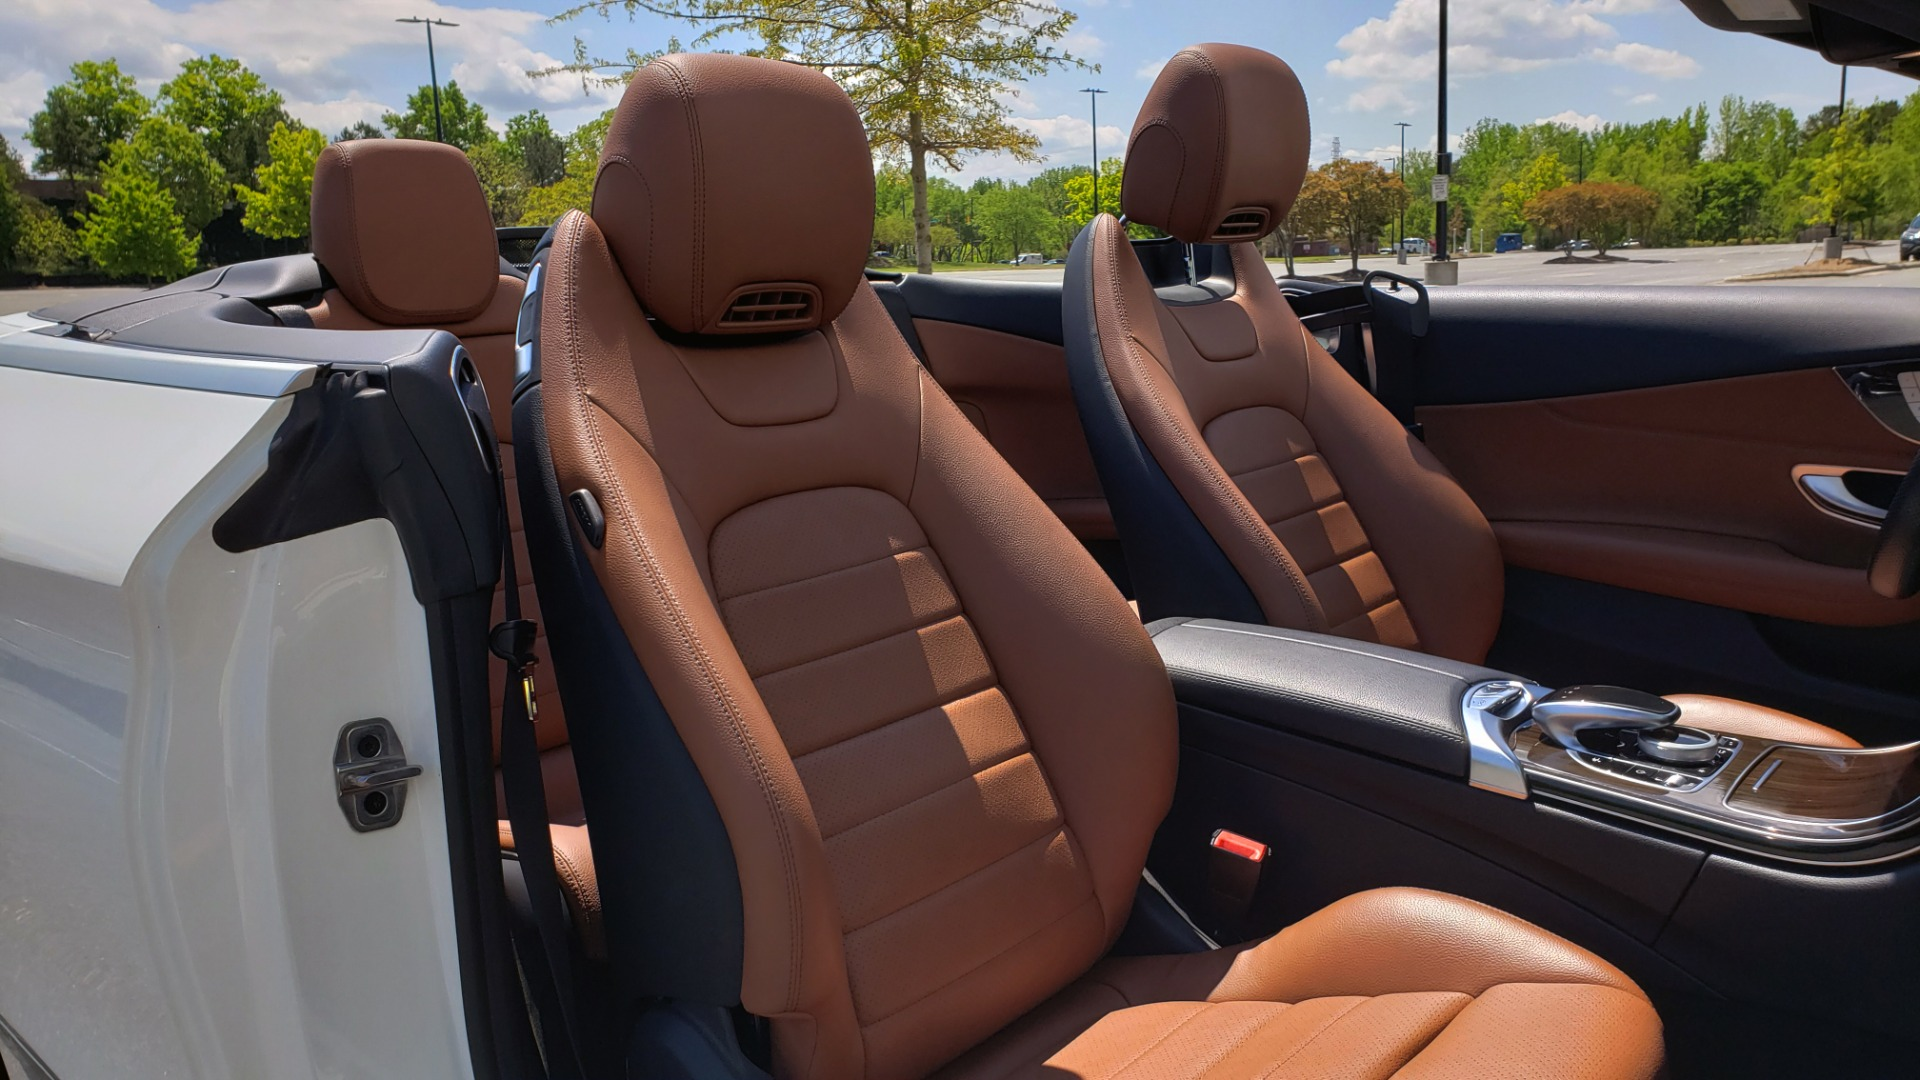 Used 2018 Mercedes-Benz C-CLASS C 300 CABRIOLET PREMIUM / AWD / BURMESTER SND / APPLE / REARVIEW for sale $44,995 at Formula Imports in Charlotte NC 28227 65